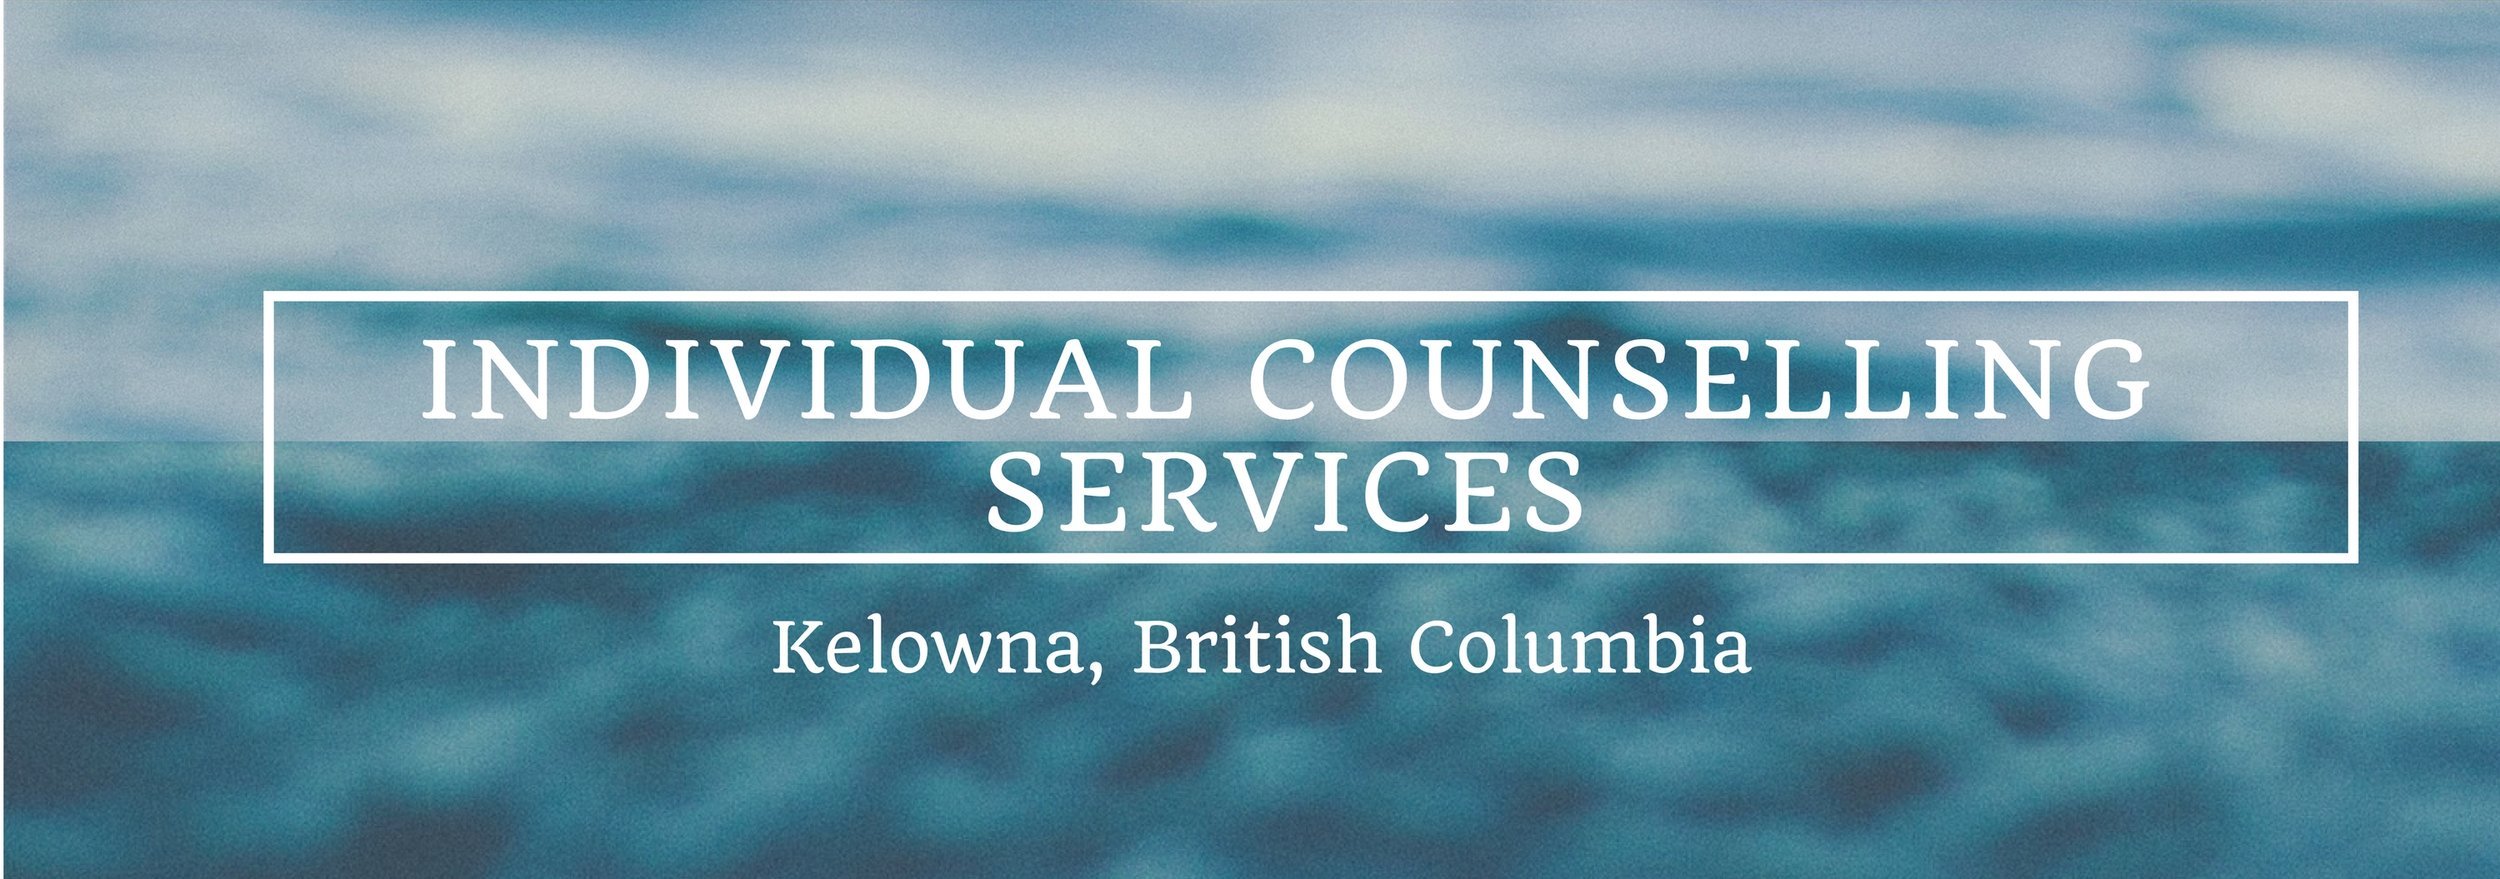 Kelowna Individual Counselling Services